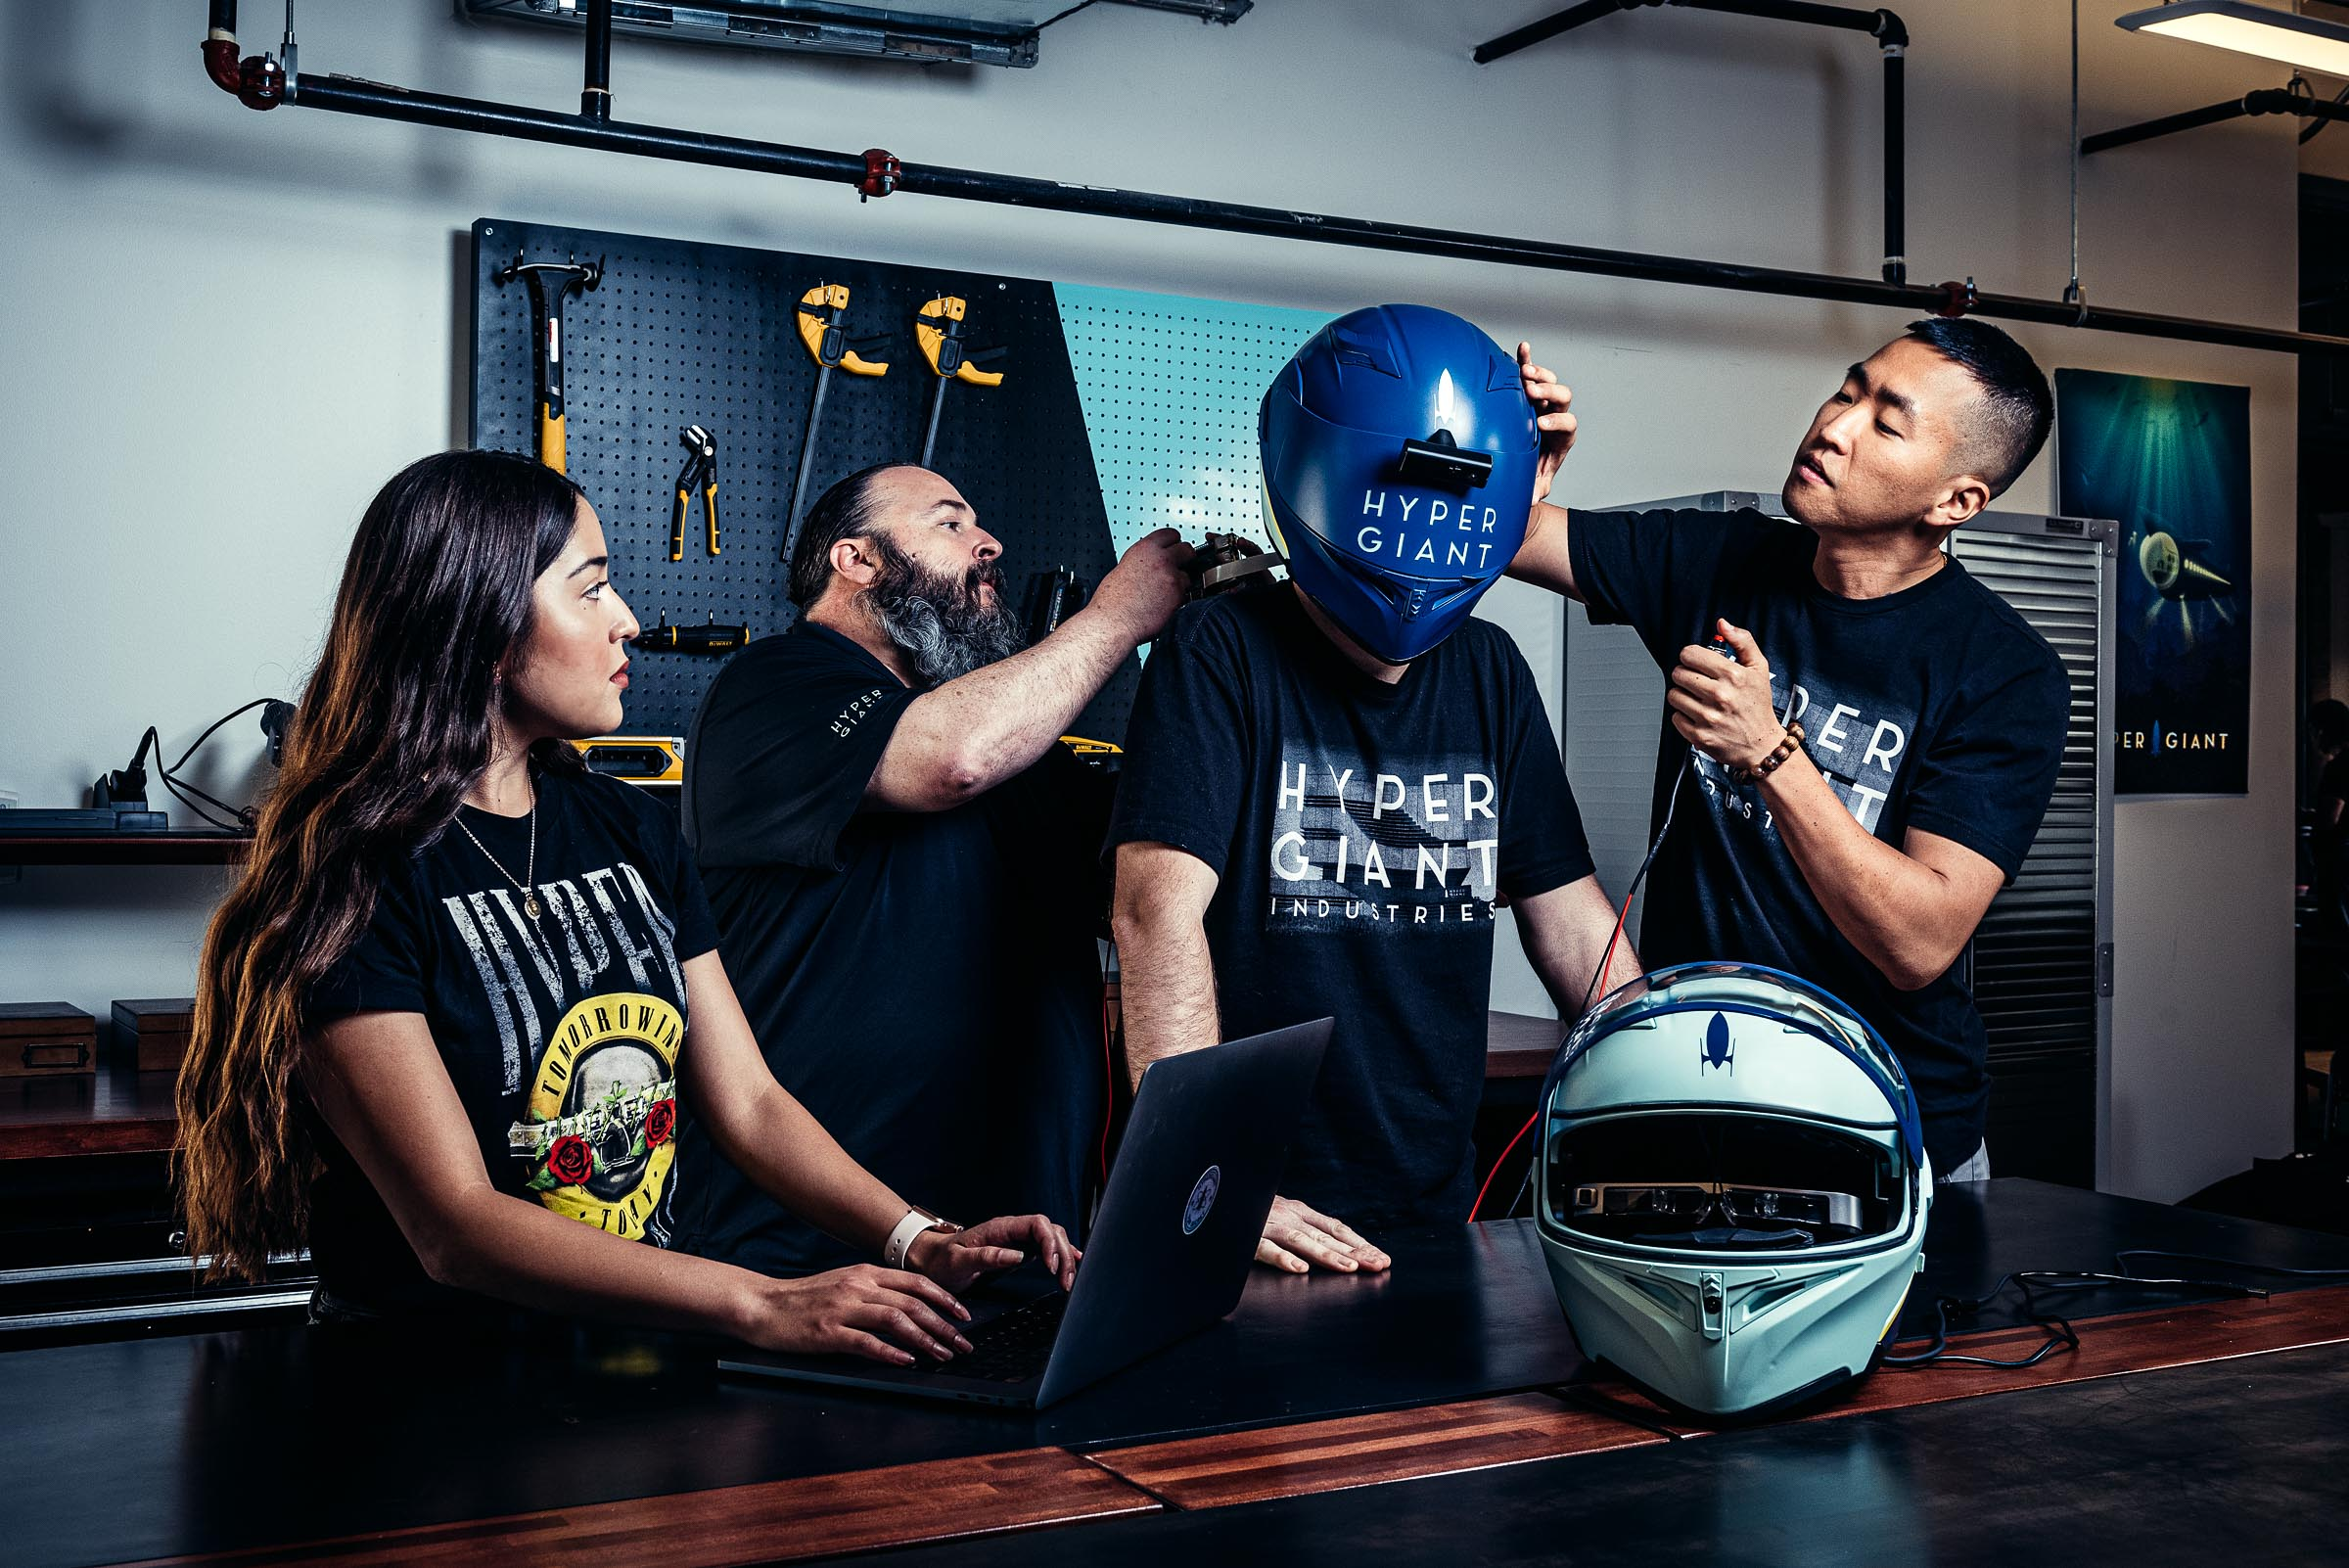 Corporate Lifestyle - Hypergiant AI Product Lab - Four colleagues work on a futuristic helmet